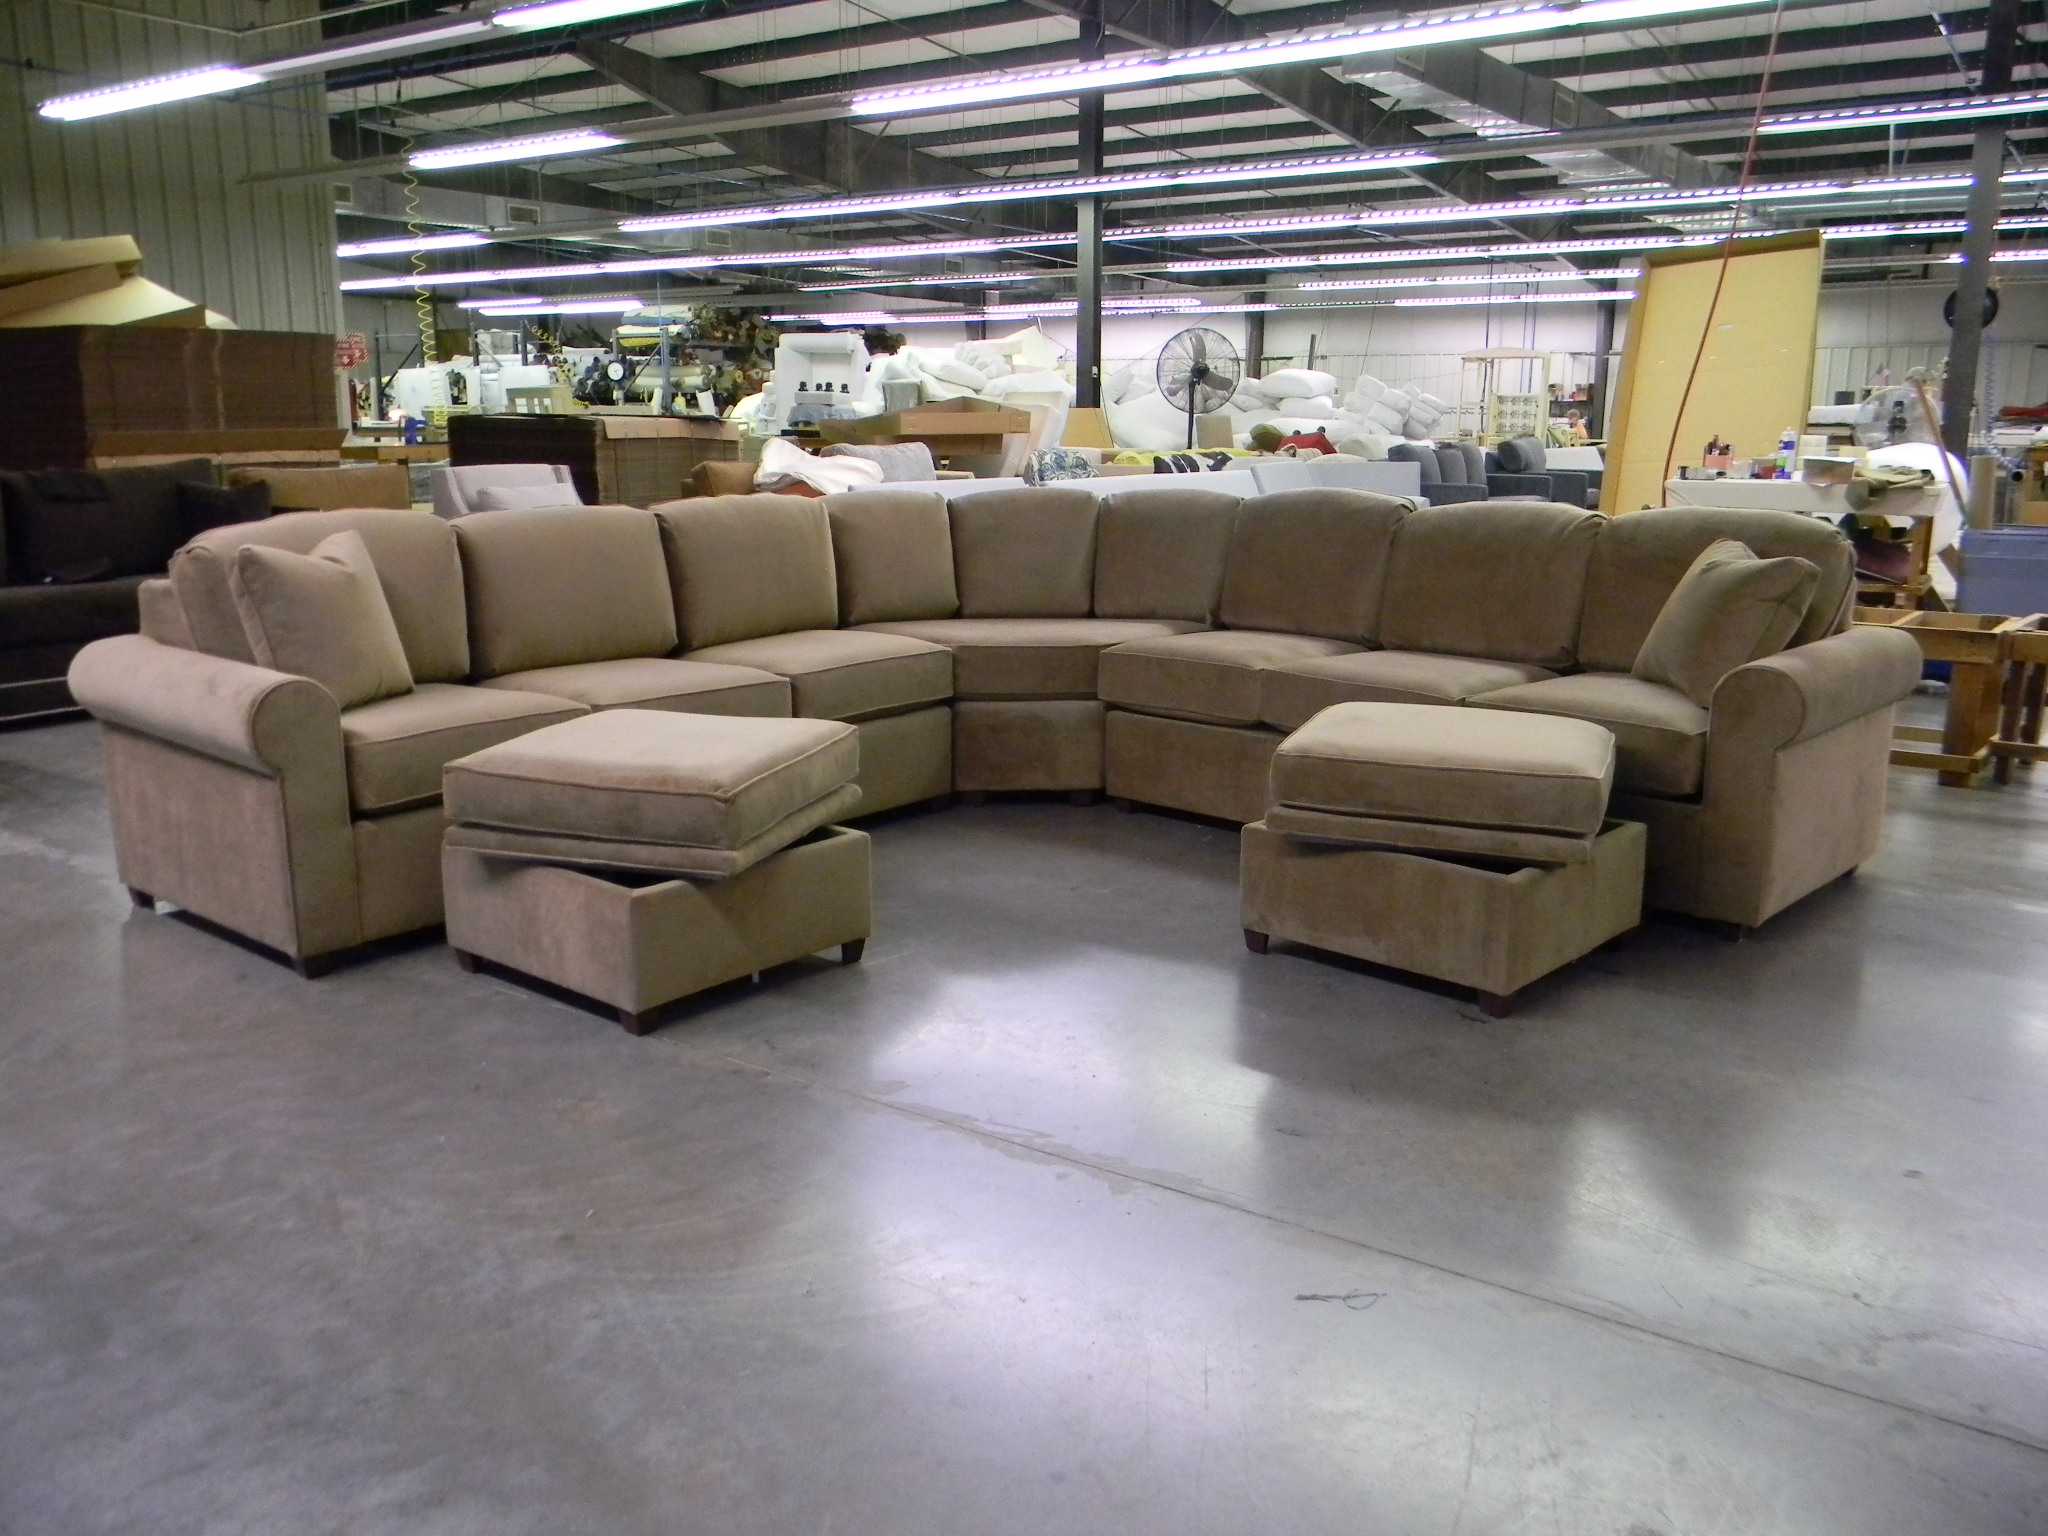 Sofas And More Shop Colca Wool Rug Hamilton Leather Sofa And More